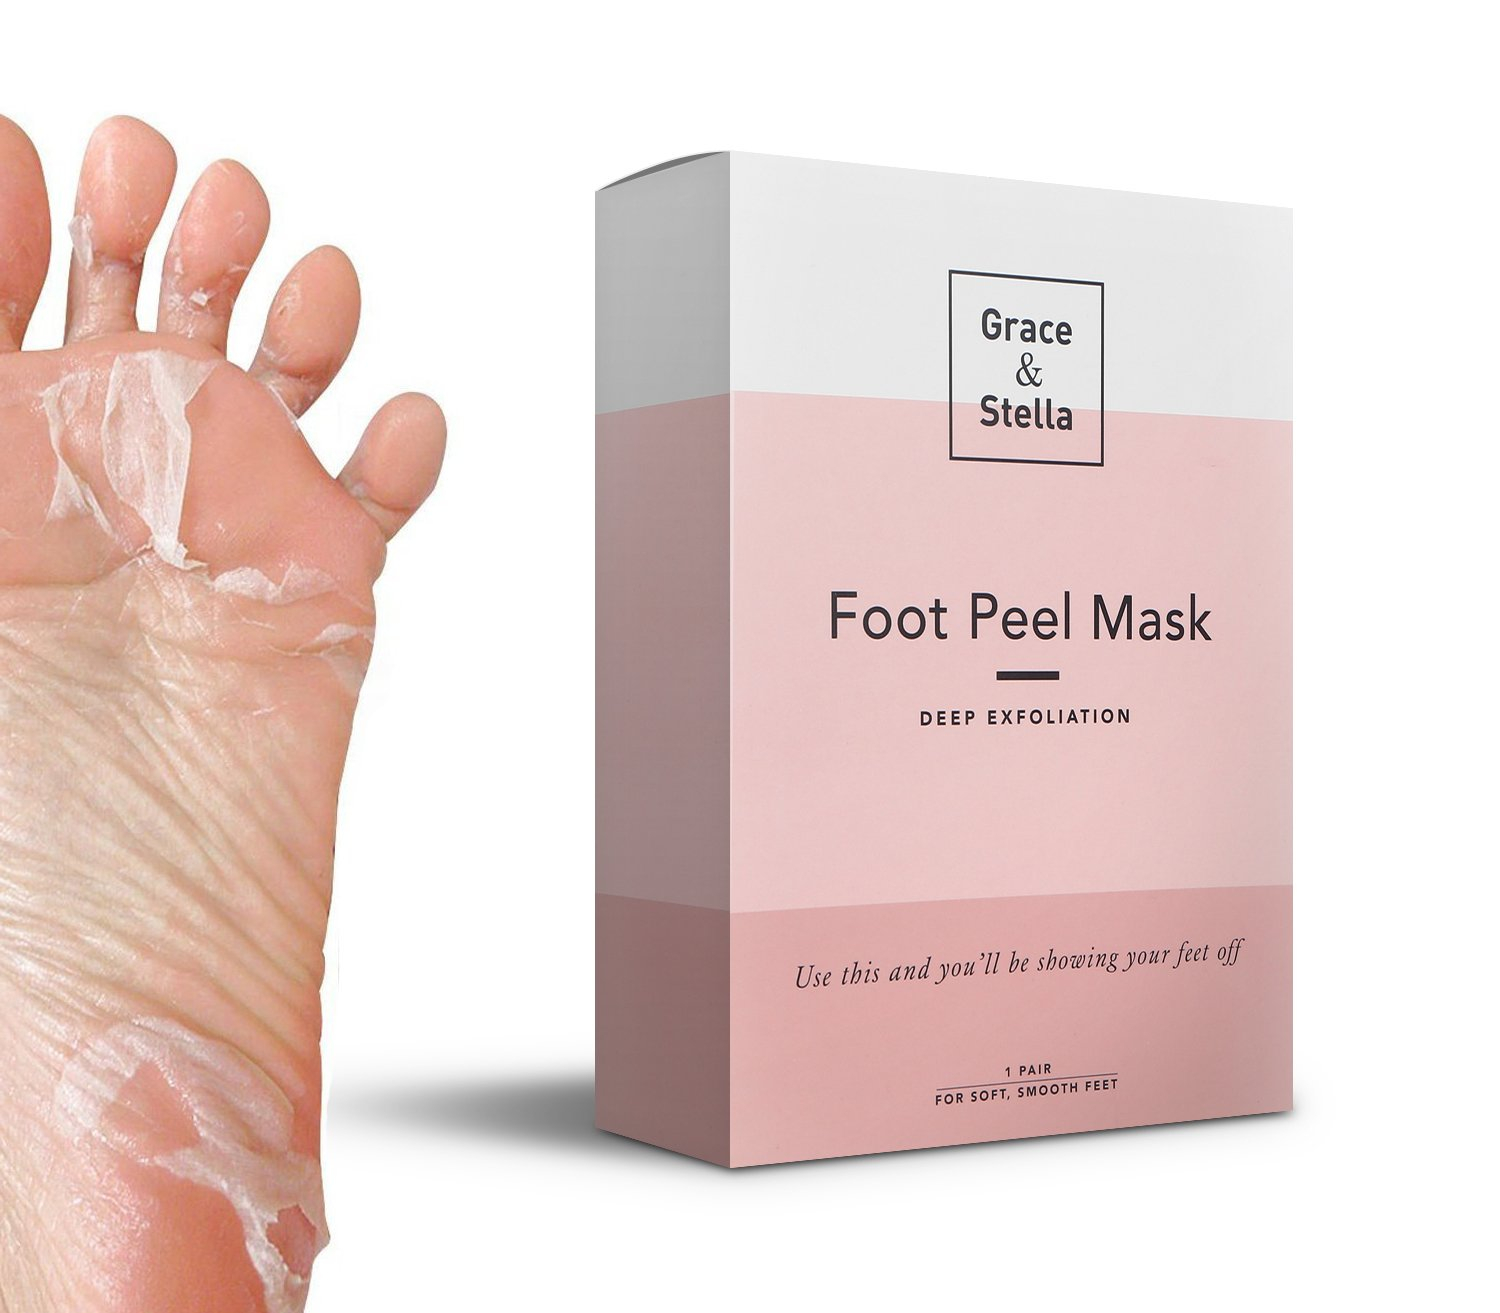 Exfoliating Foot Mask Odor Eliminator Exfoliating Socks & Callus Dead Skin Cells Remover At Home Spa Grace & Stella Co.